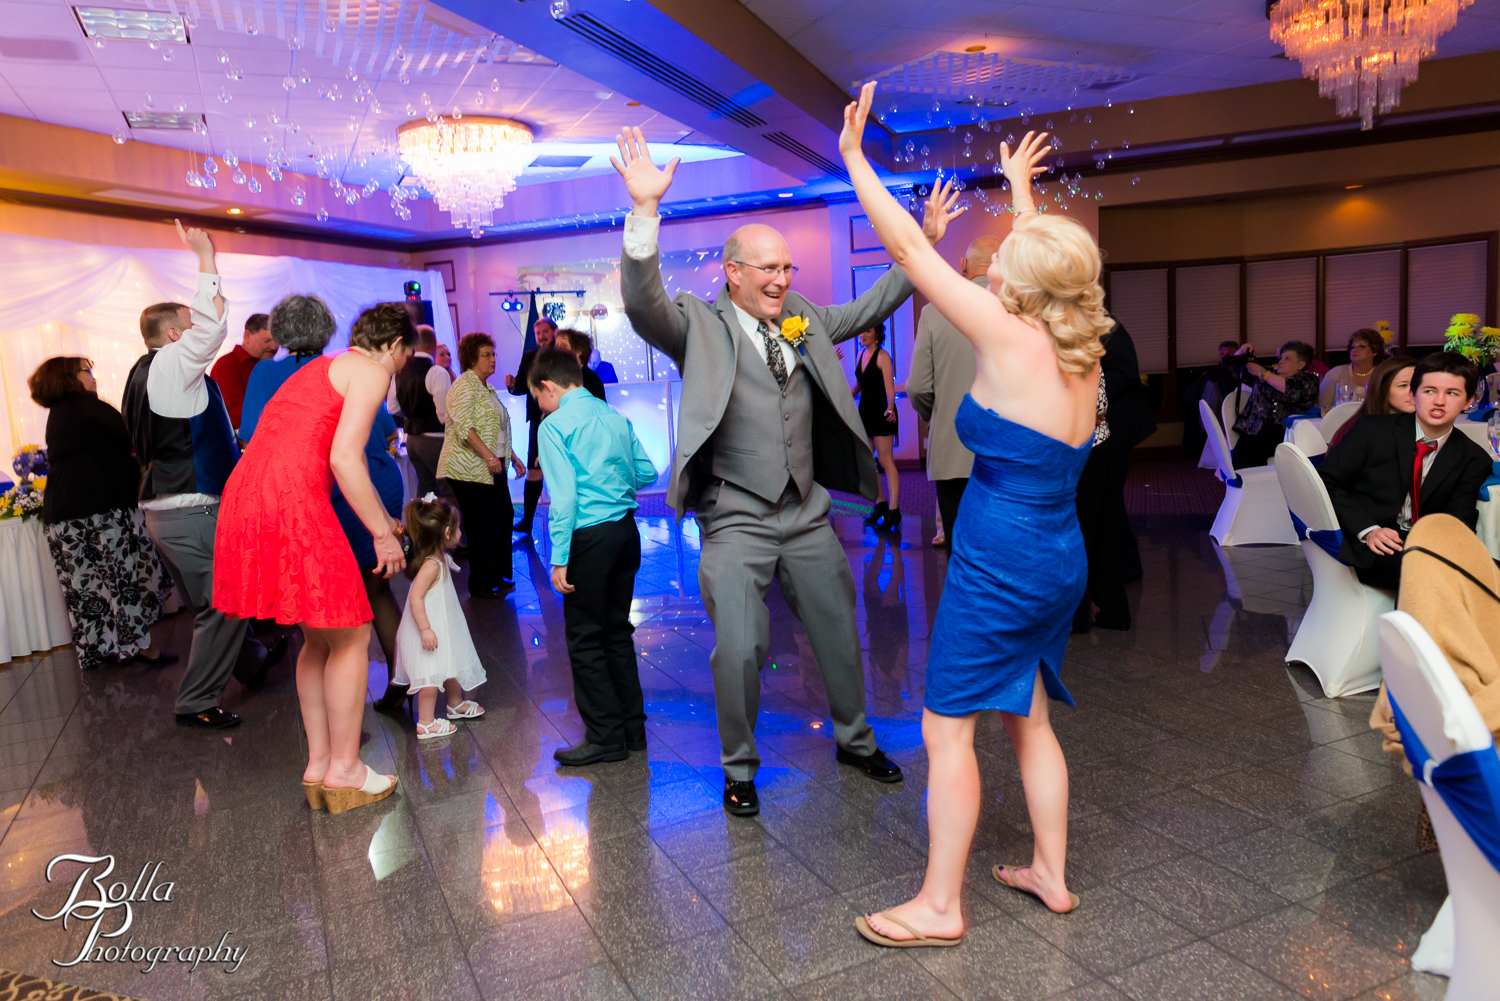 Bolla_Photography_St_Louis_wedding_photographer_Morgando_Blues_hockey_Botanical_Gardens_spring-0478.jpg